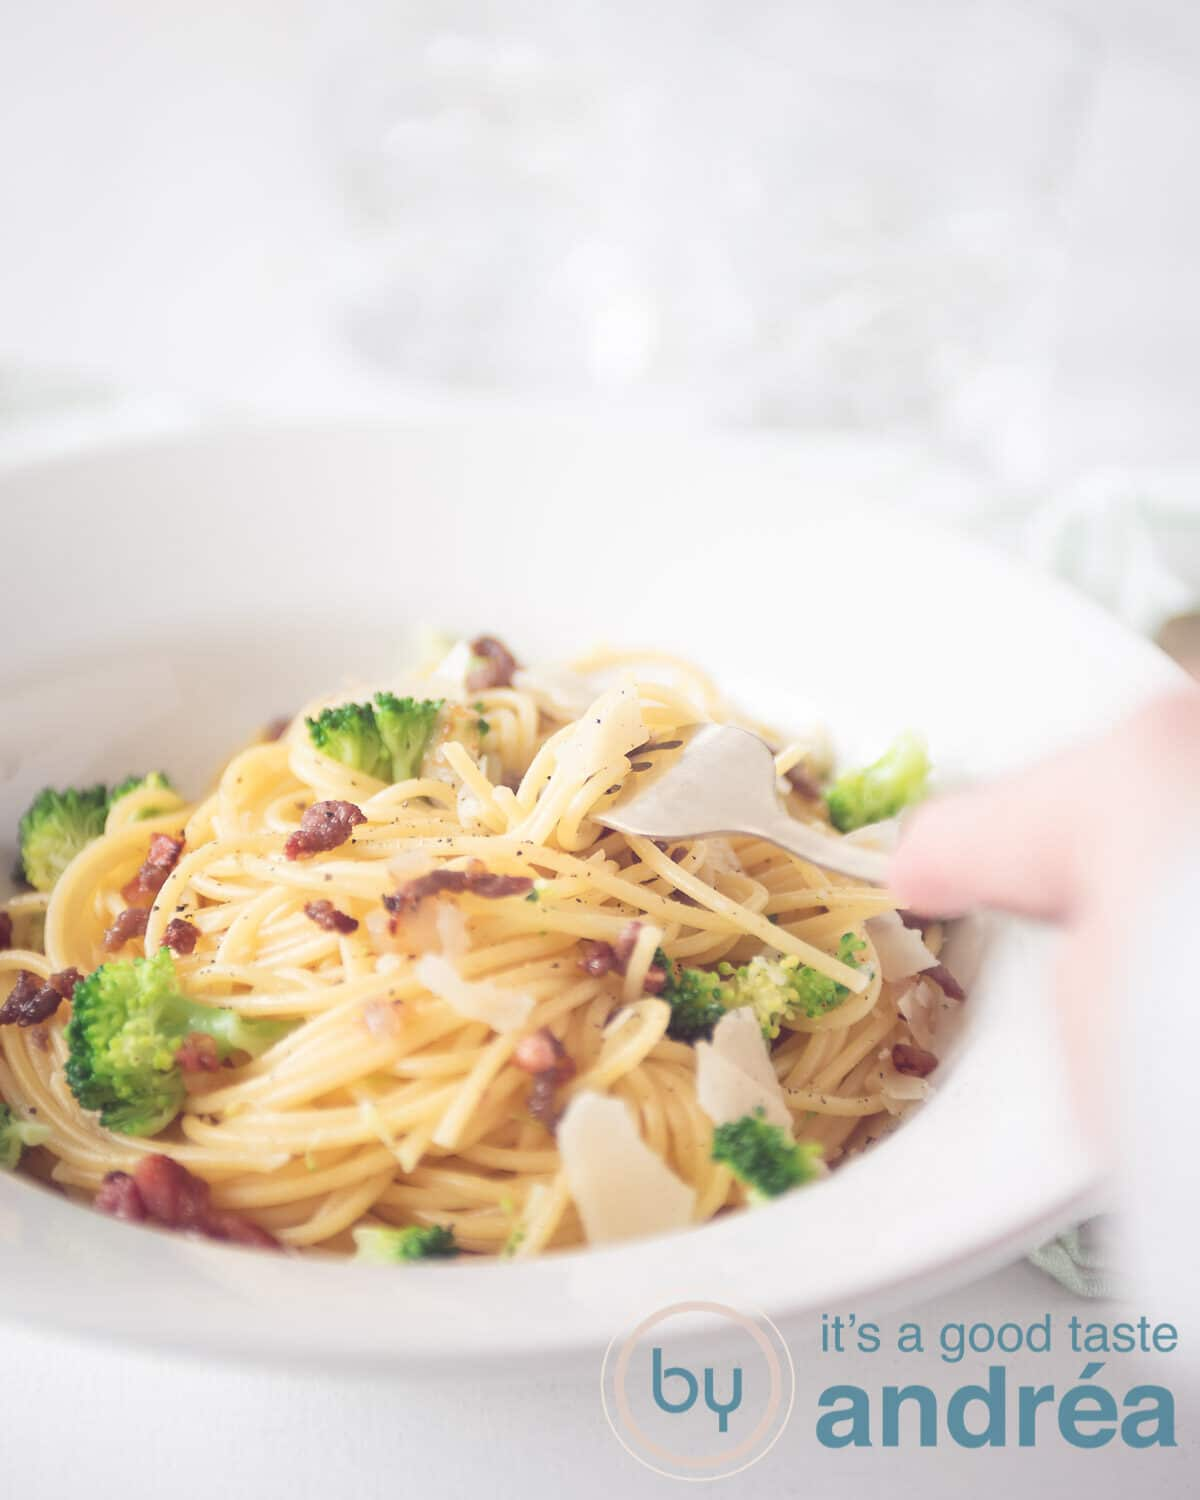 A hand taking some spaghetti, broccoli and bacon